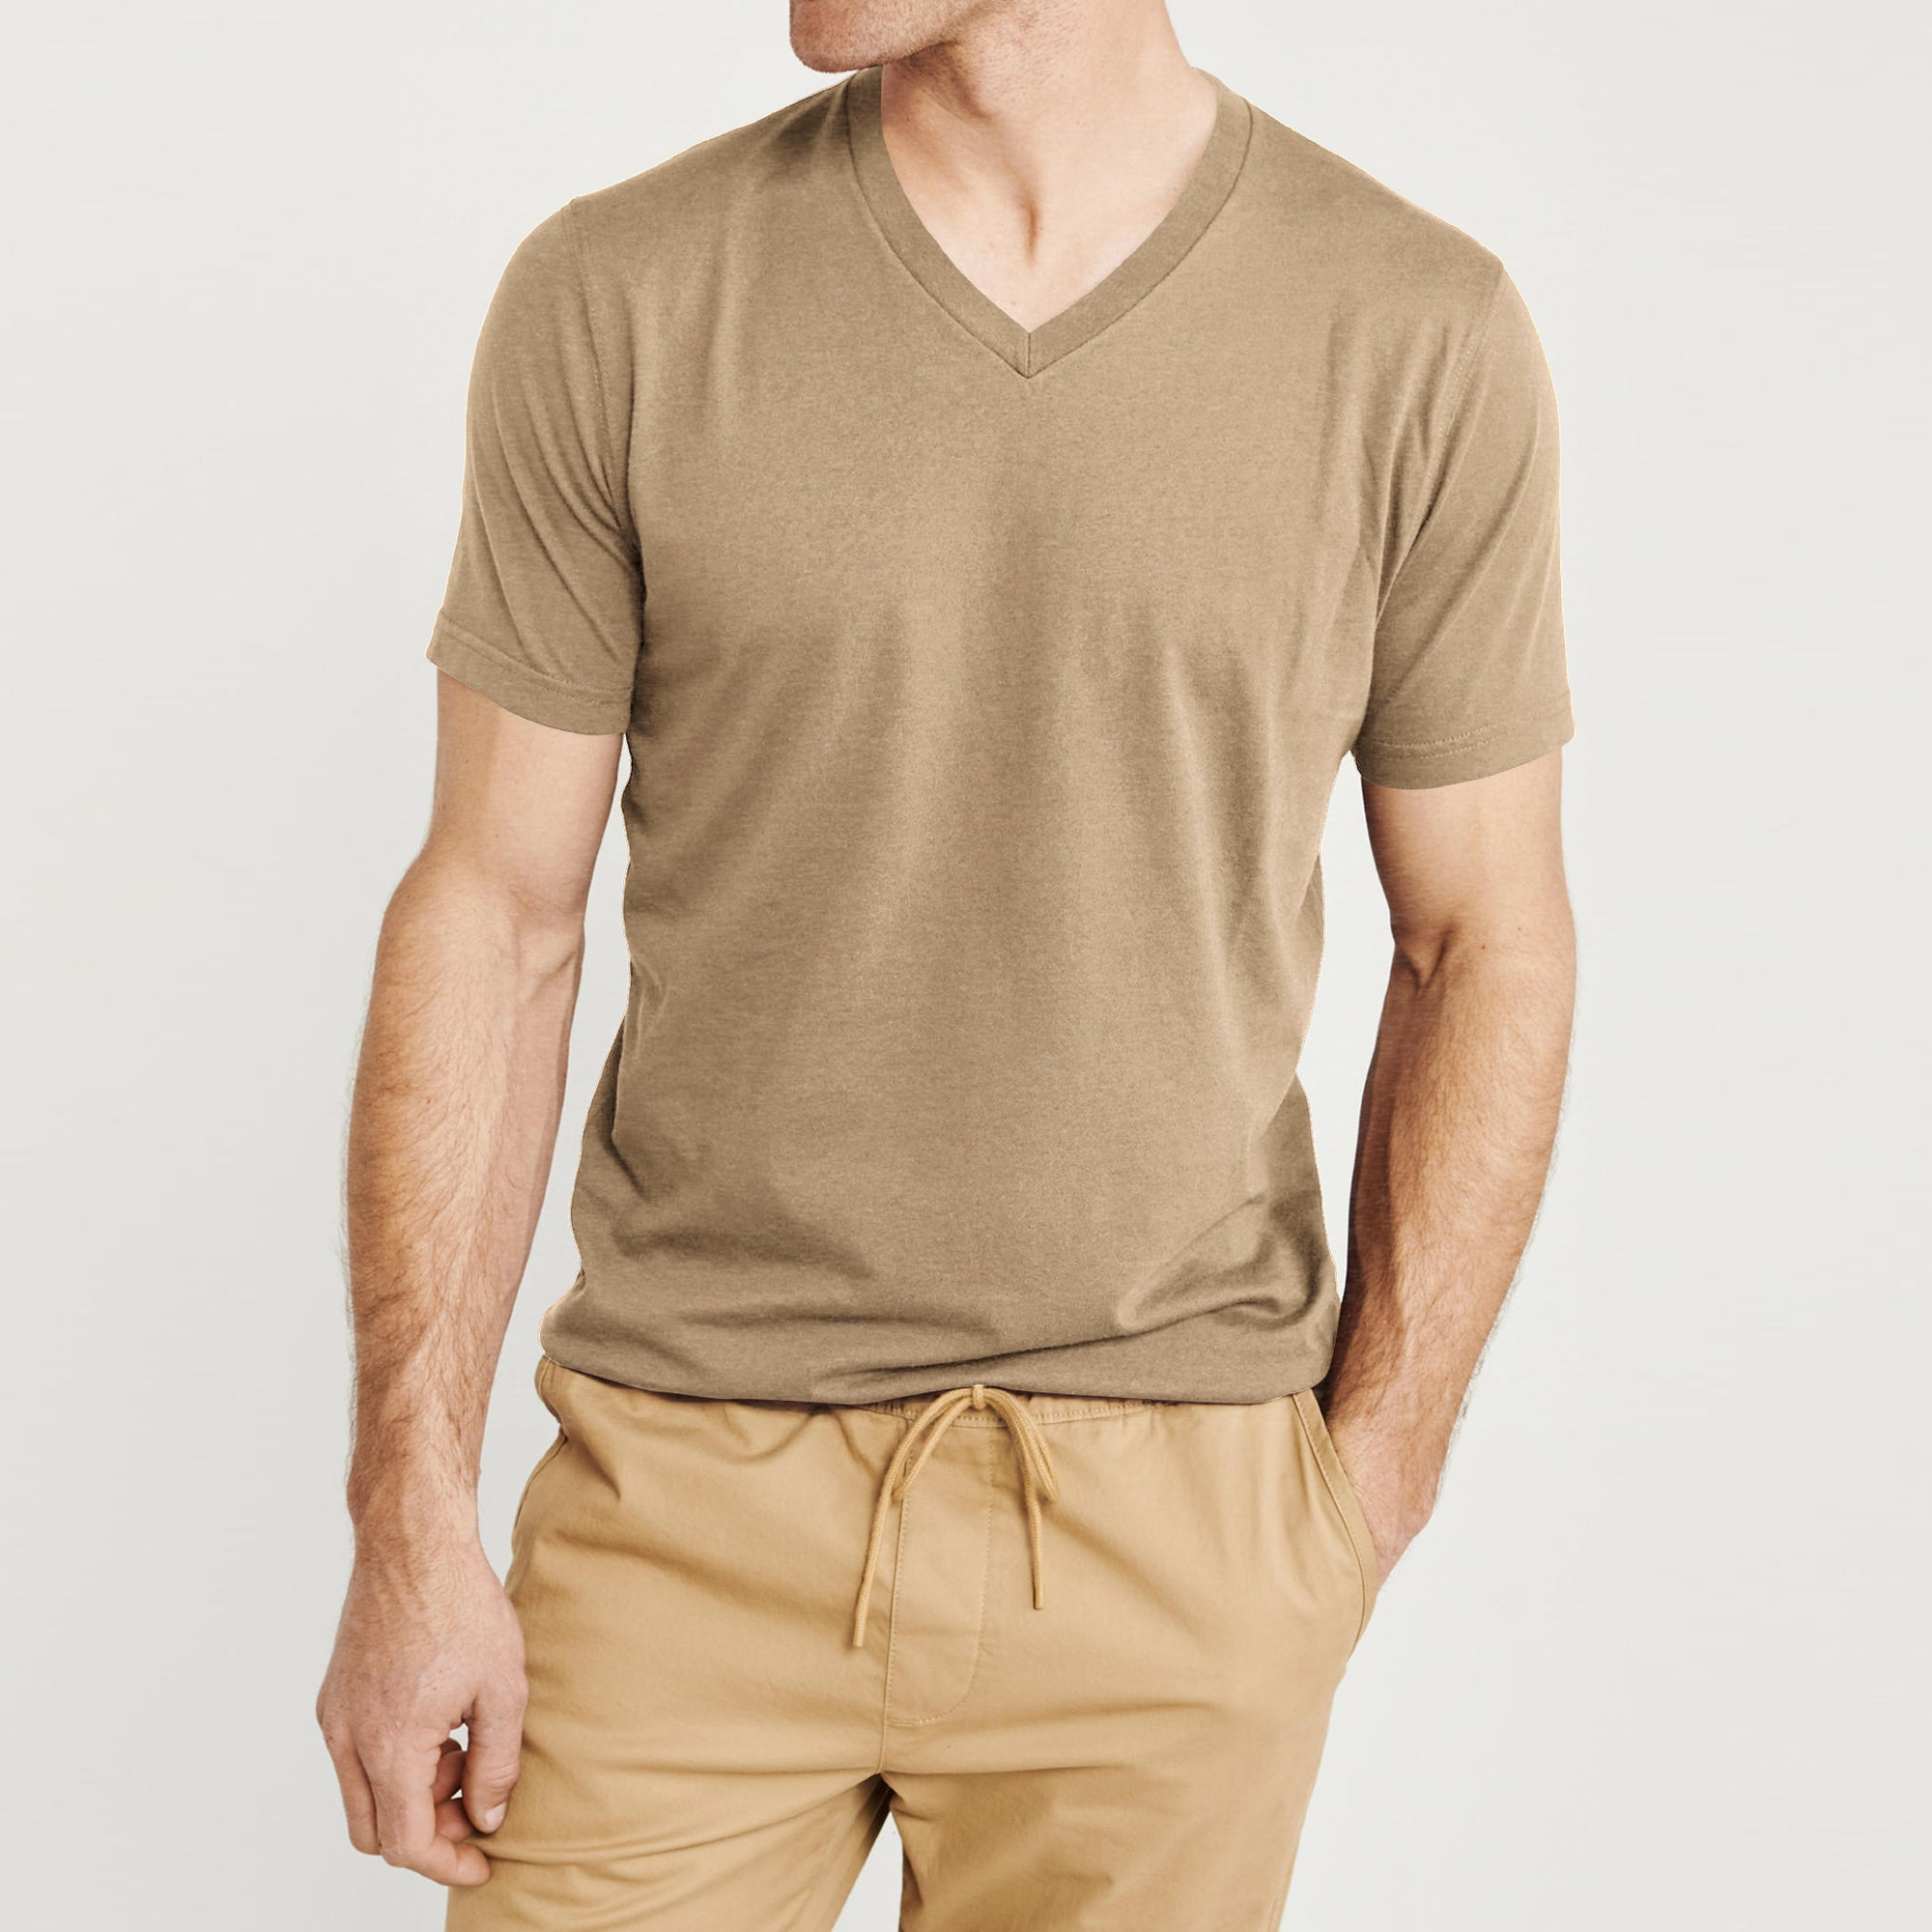 Beverly Hills V Neck Half Sleeve Tee Shirt For Men-Light Camel-BE8901